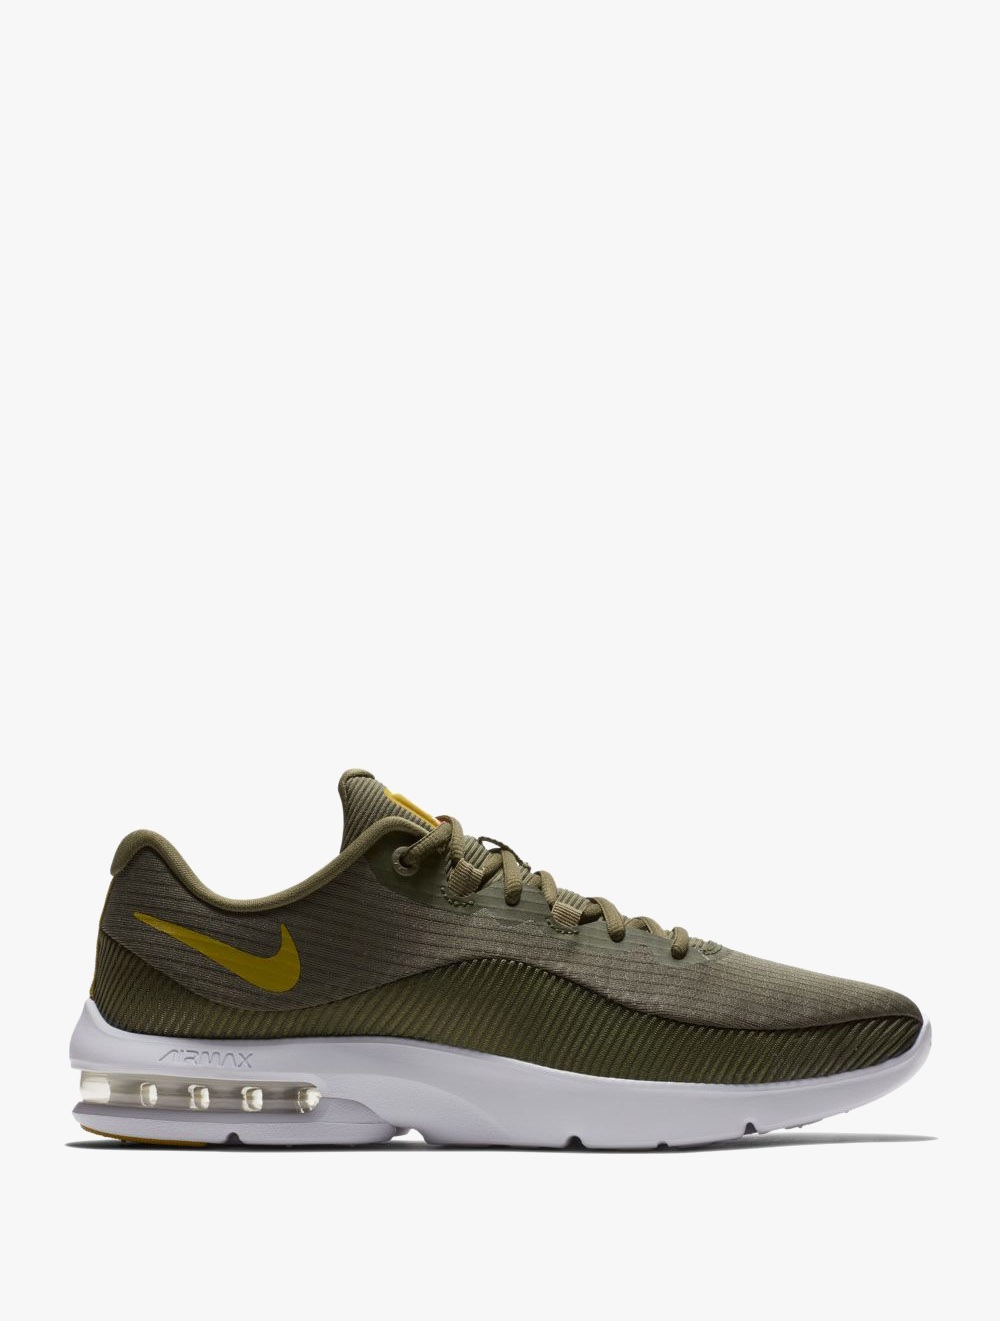 ba51934fd 01-NIKE-F34RUNIK5-Air-Max-Advantage-Mens-Running-Shoes-Green.jpg